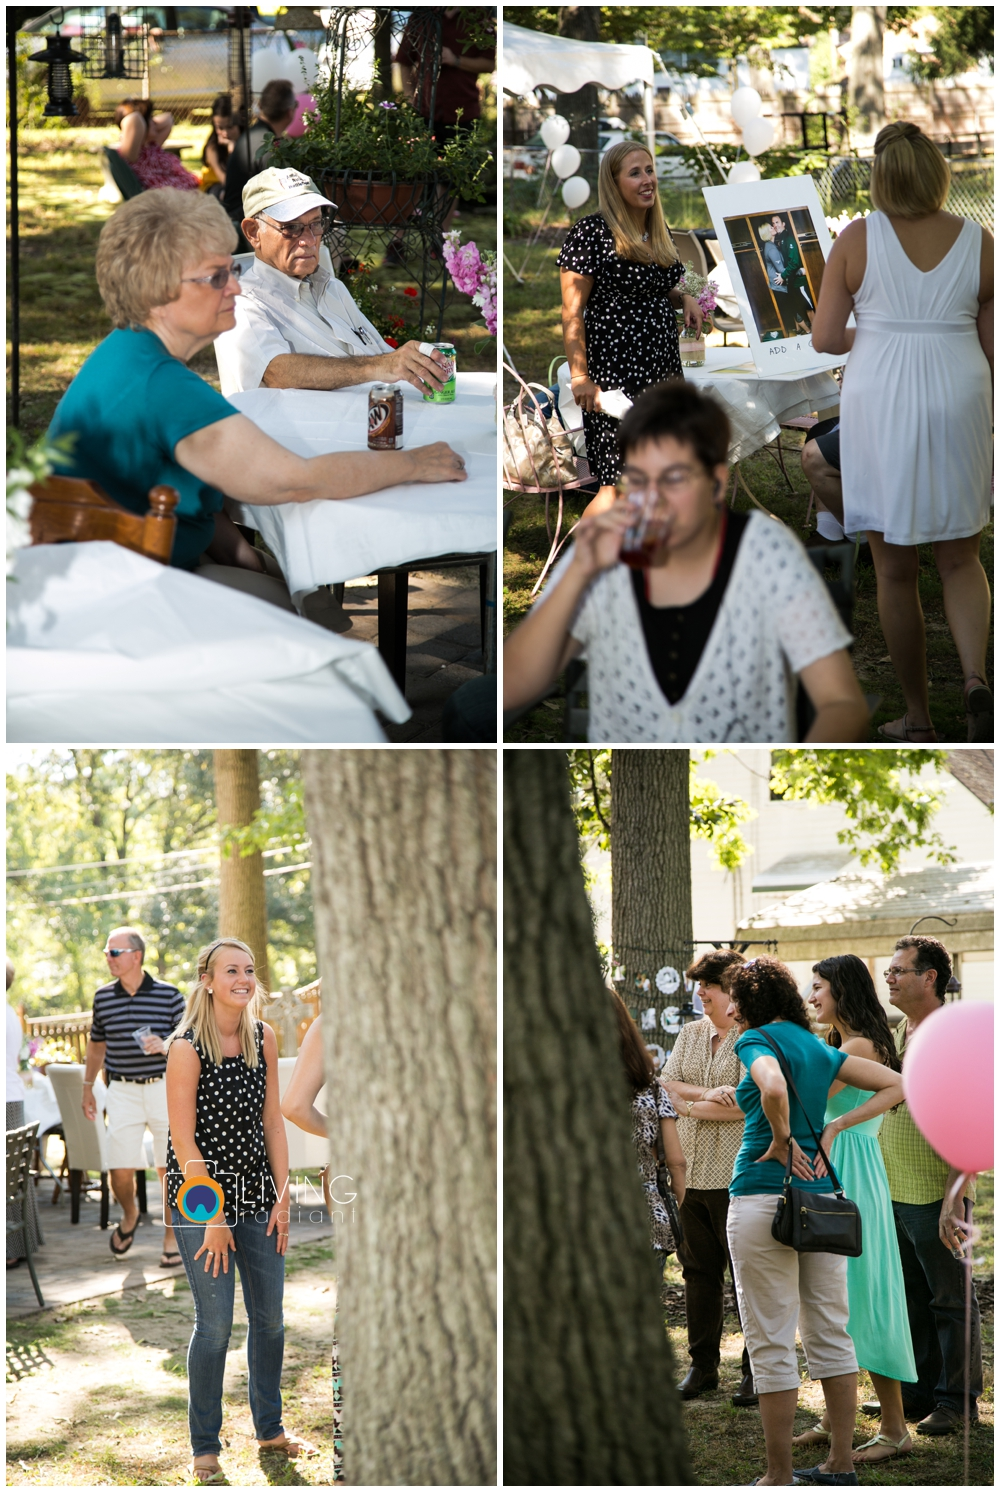 brent-laura-engagement-party-baltimore-living-radiant-photography_0047.jpg